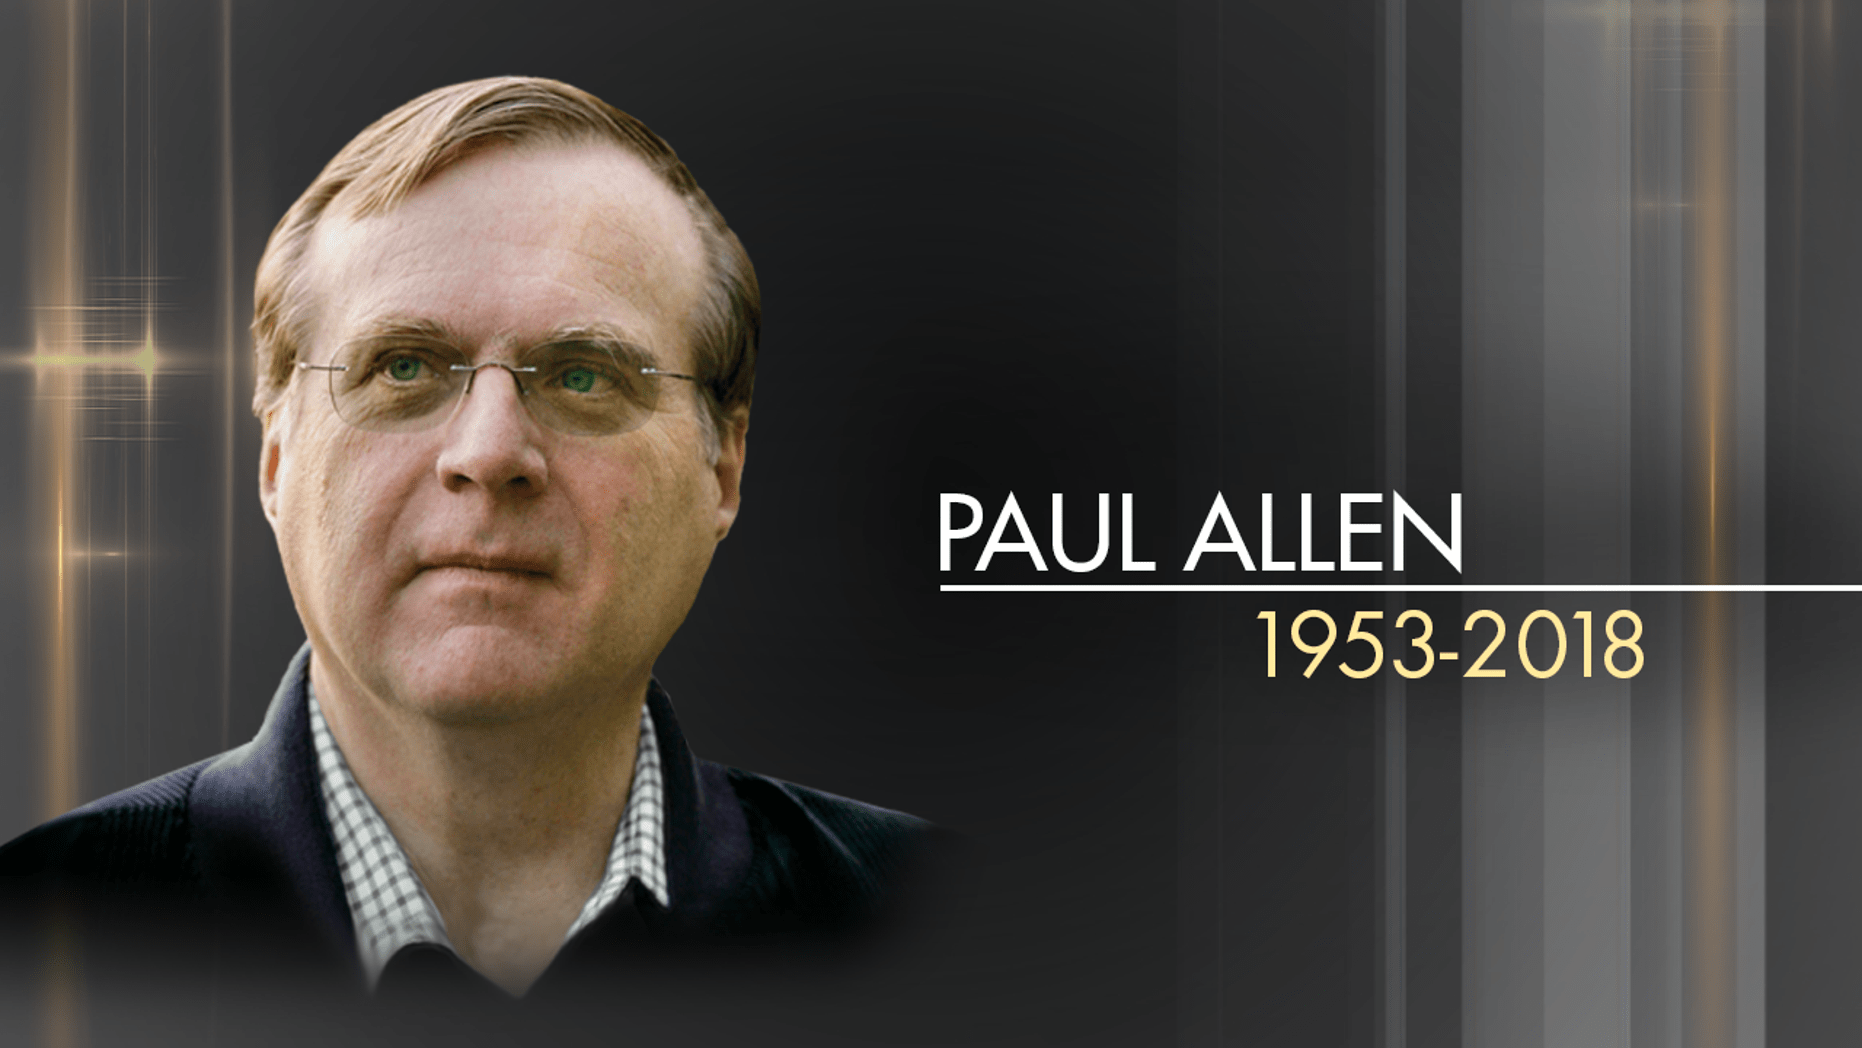 Paul Allen's death sparks reactions from the NFL, Microsoft | Fox News